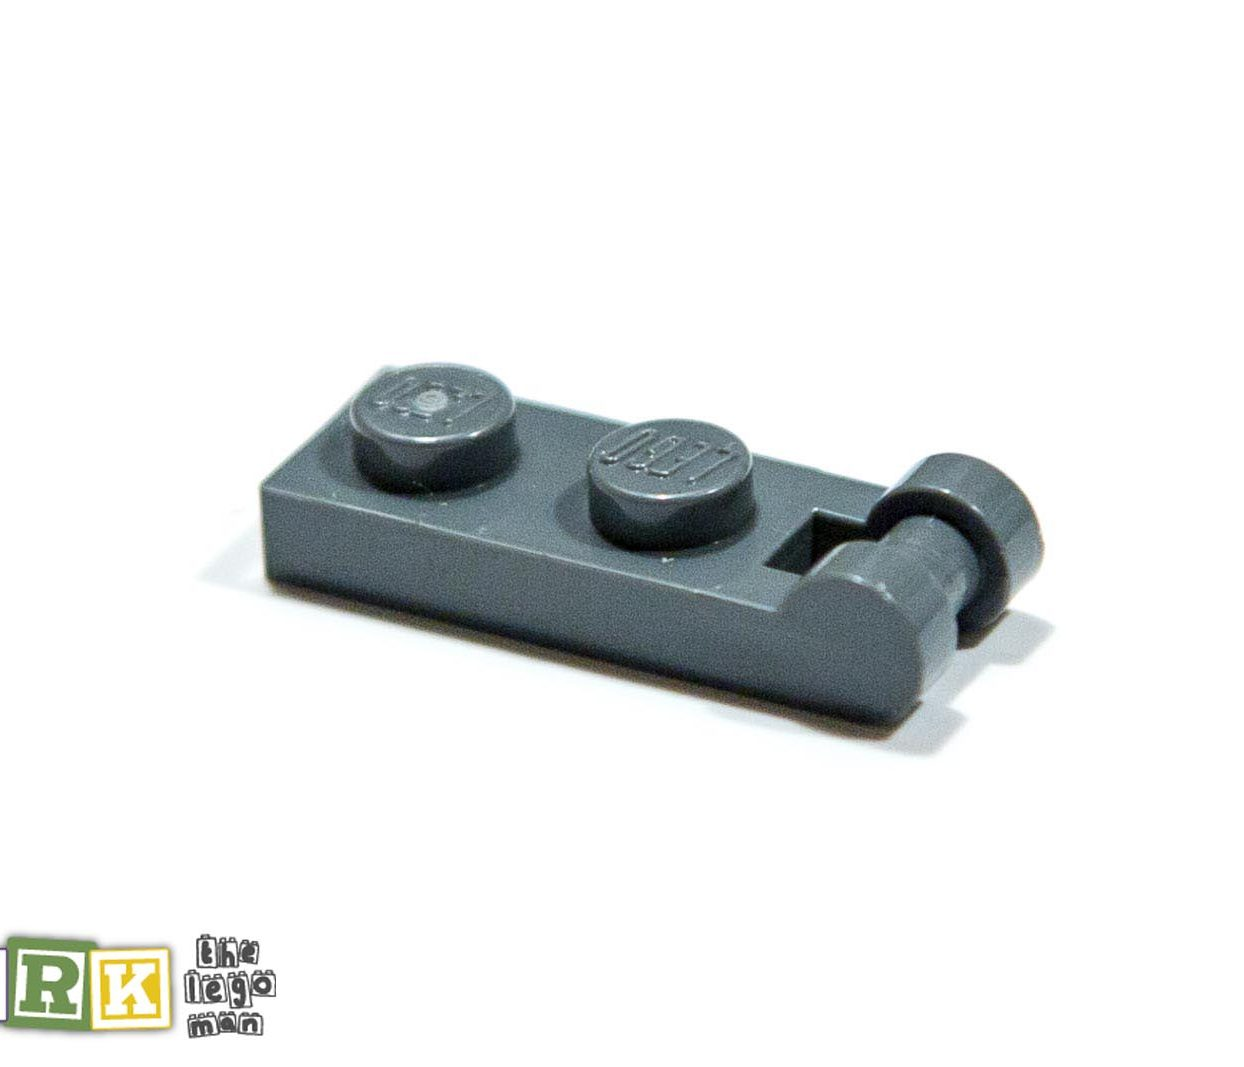 Lego 4521187 60478 1x Dark Blueish Grey Dark Stone Dark Standard Grey 1x2 3.2 Plate With Shaft